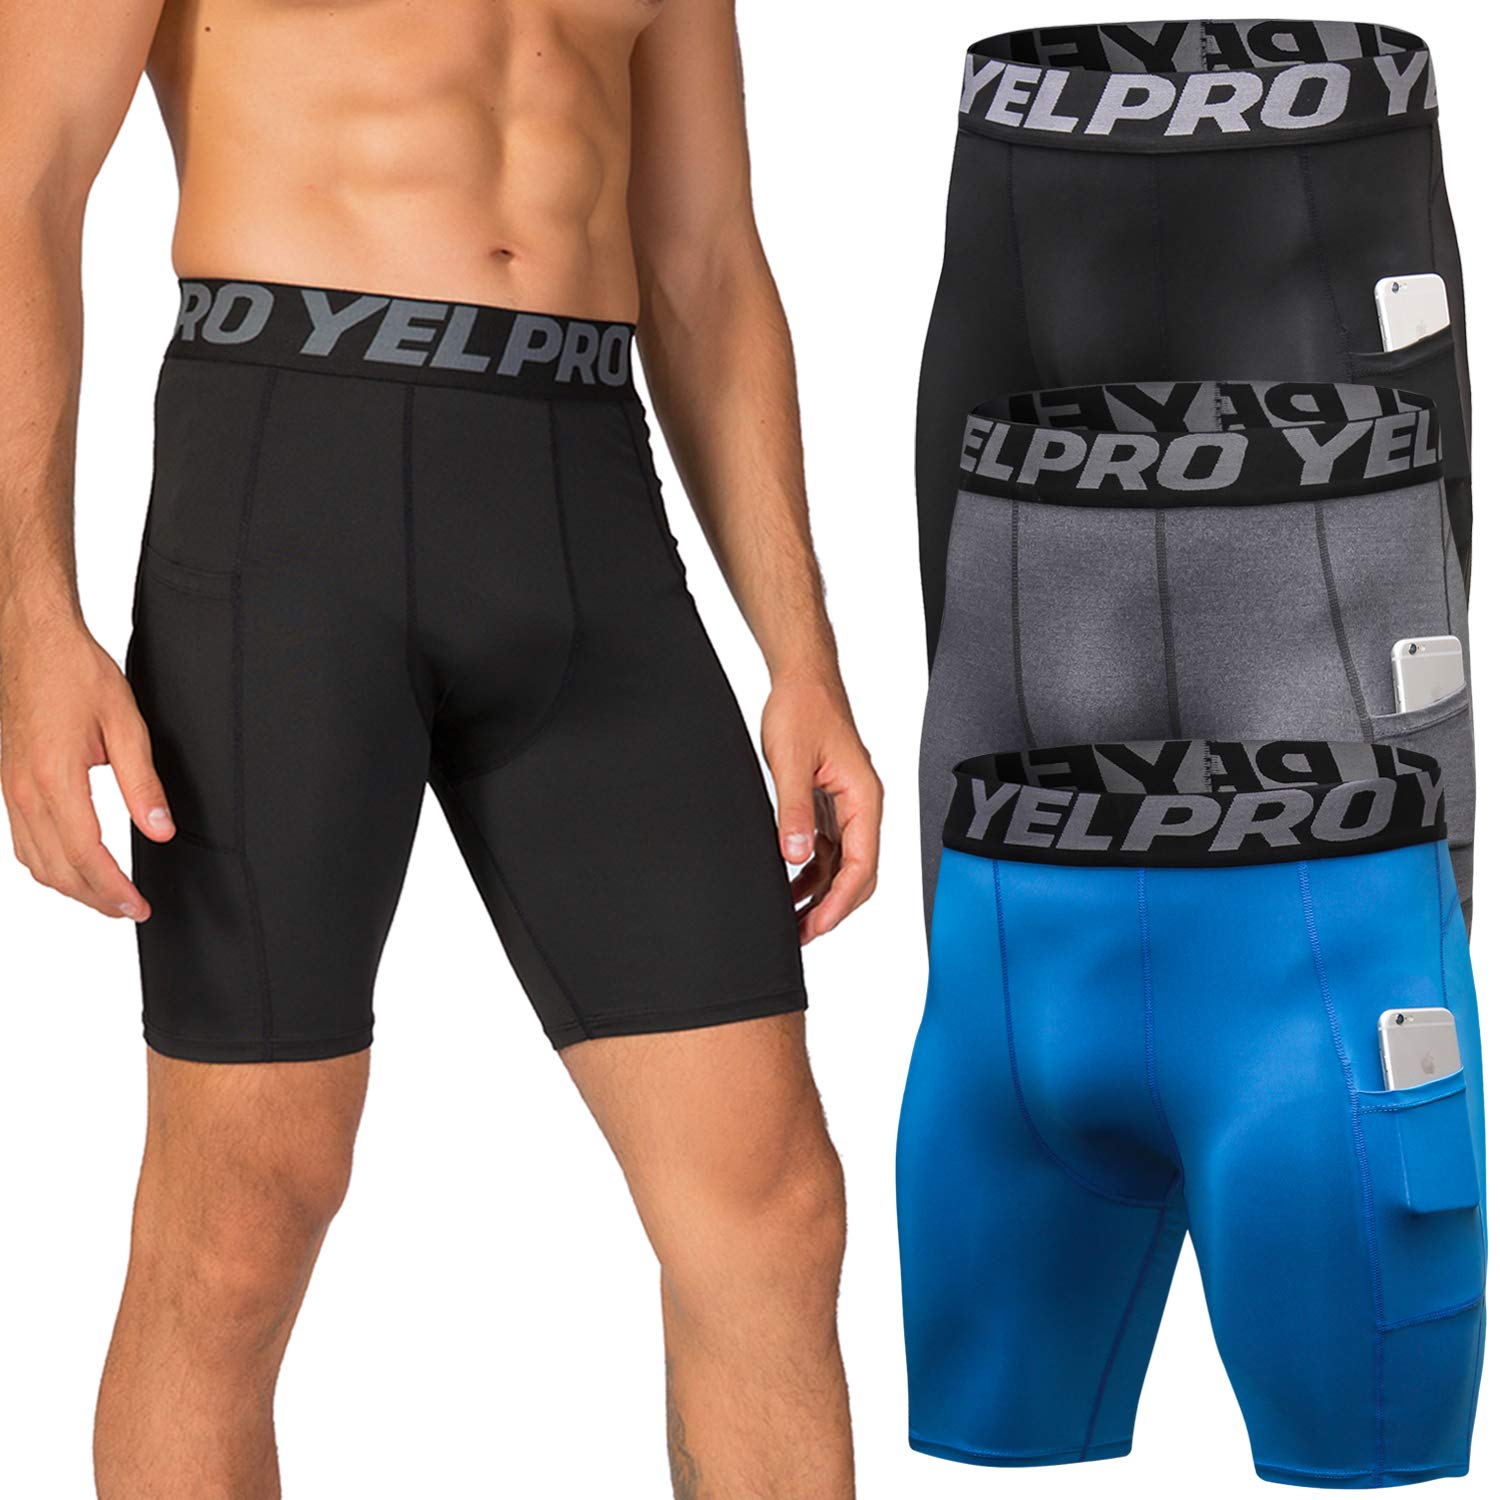 Lavento Men's Compression Shorts Baselayer Pocket Cool Dry Workout Tights (3 Pack-3814 Black/Gray/Blue,2X-Large) by Lavento